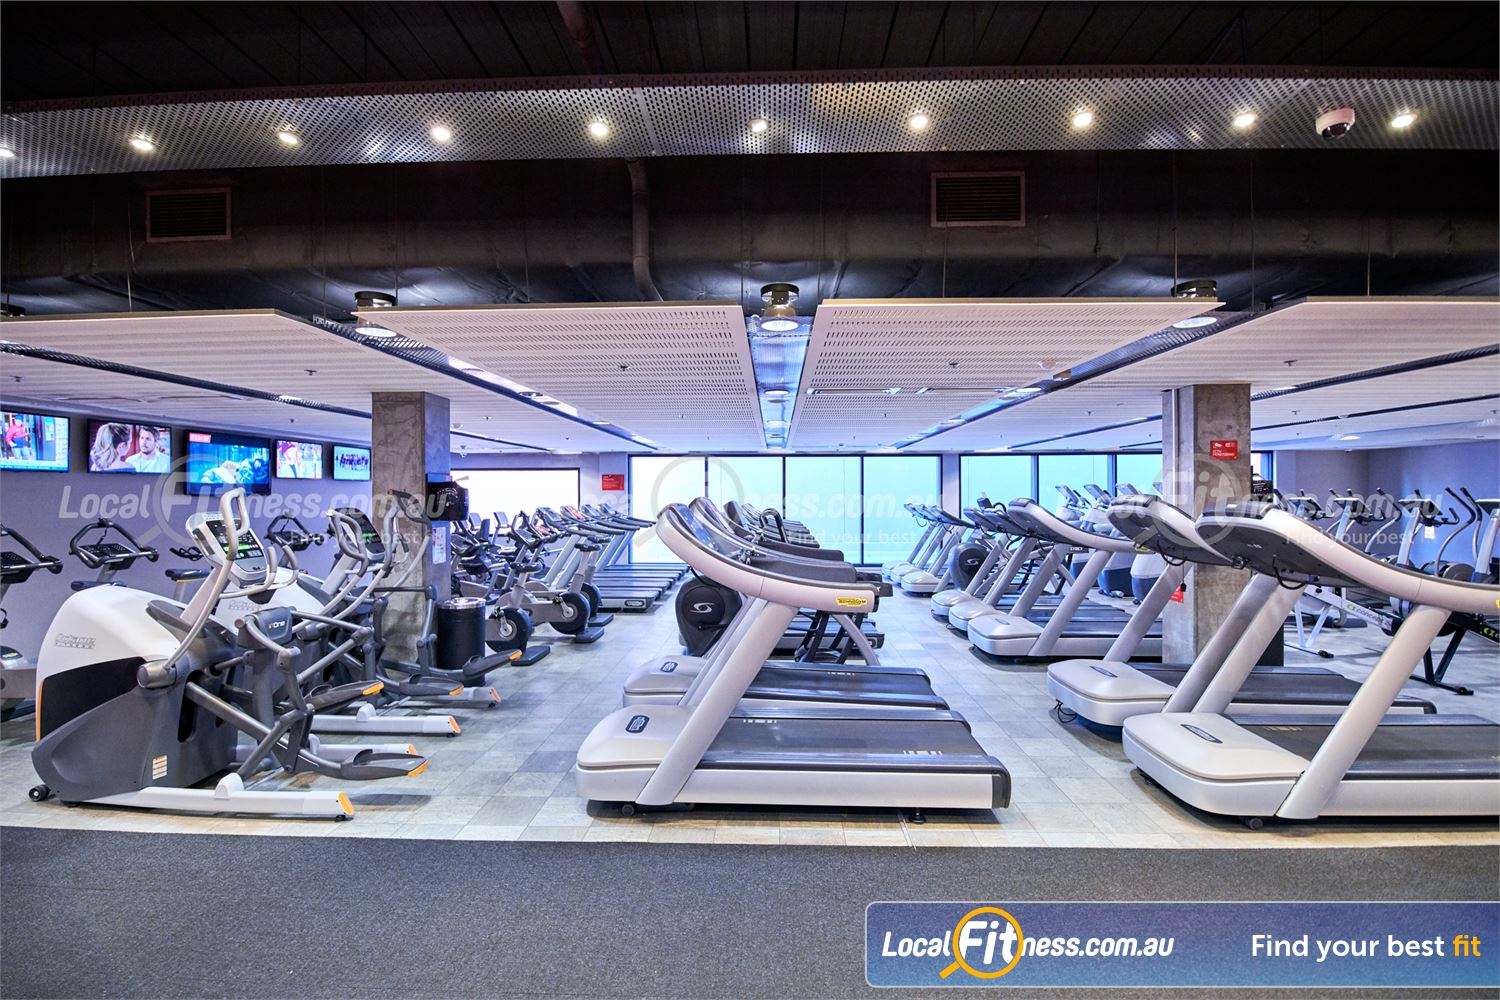 Fitness First Victoria Gardens Richmond Rows of state of the art treadmills, cross-trainers and steppers.